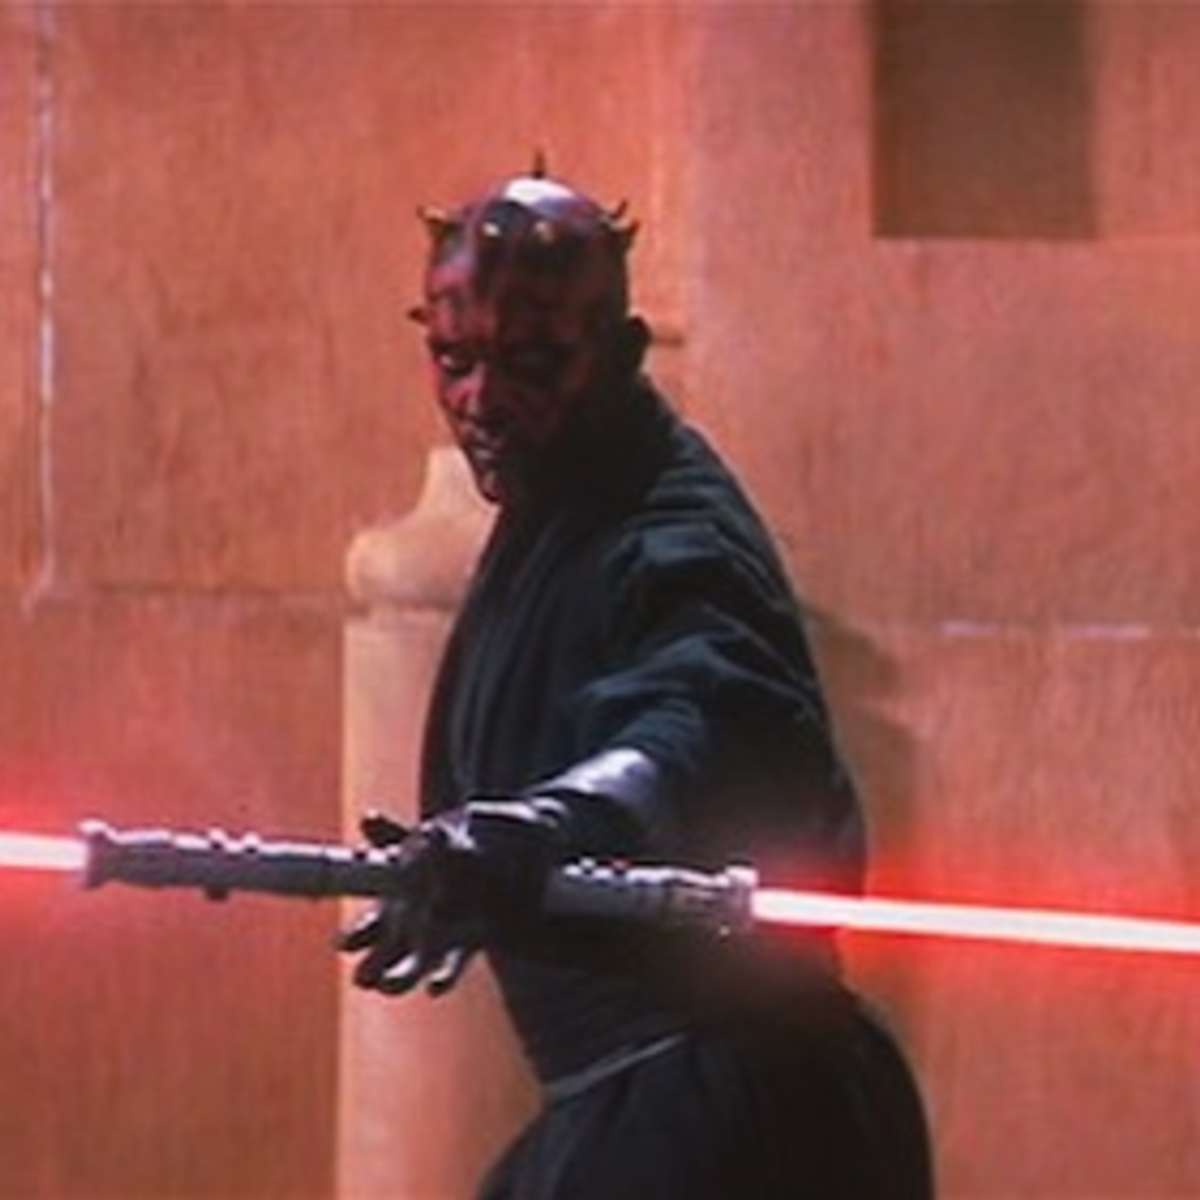 darth_maul_phantom_menace_1.jpg